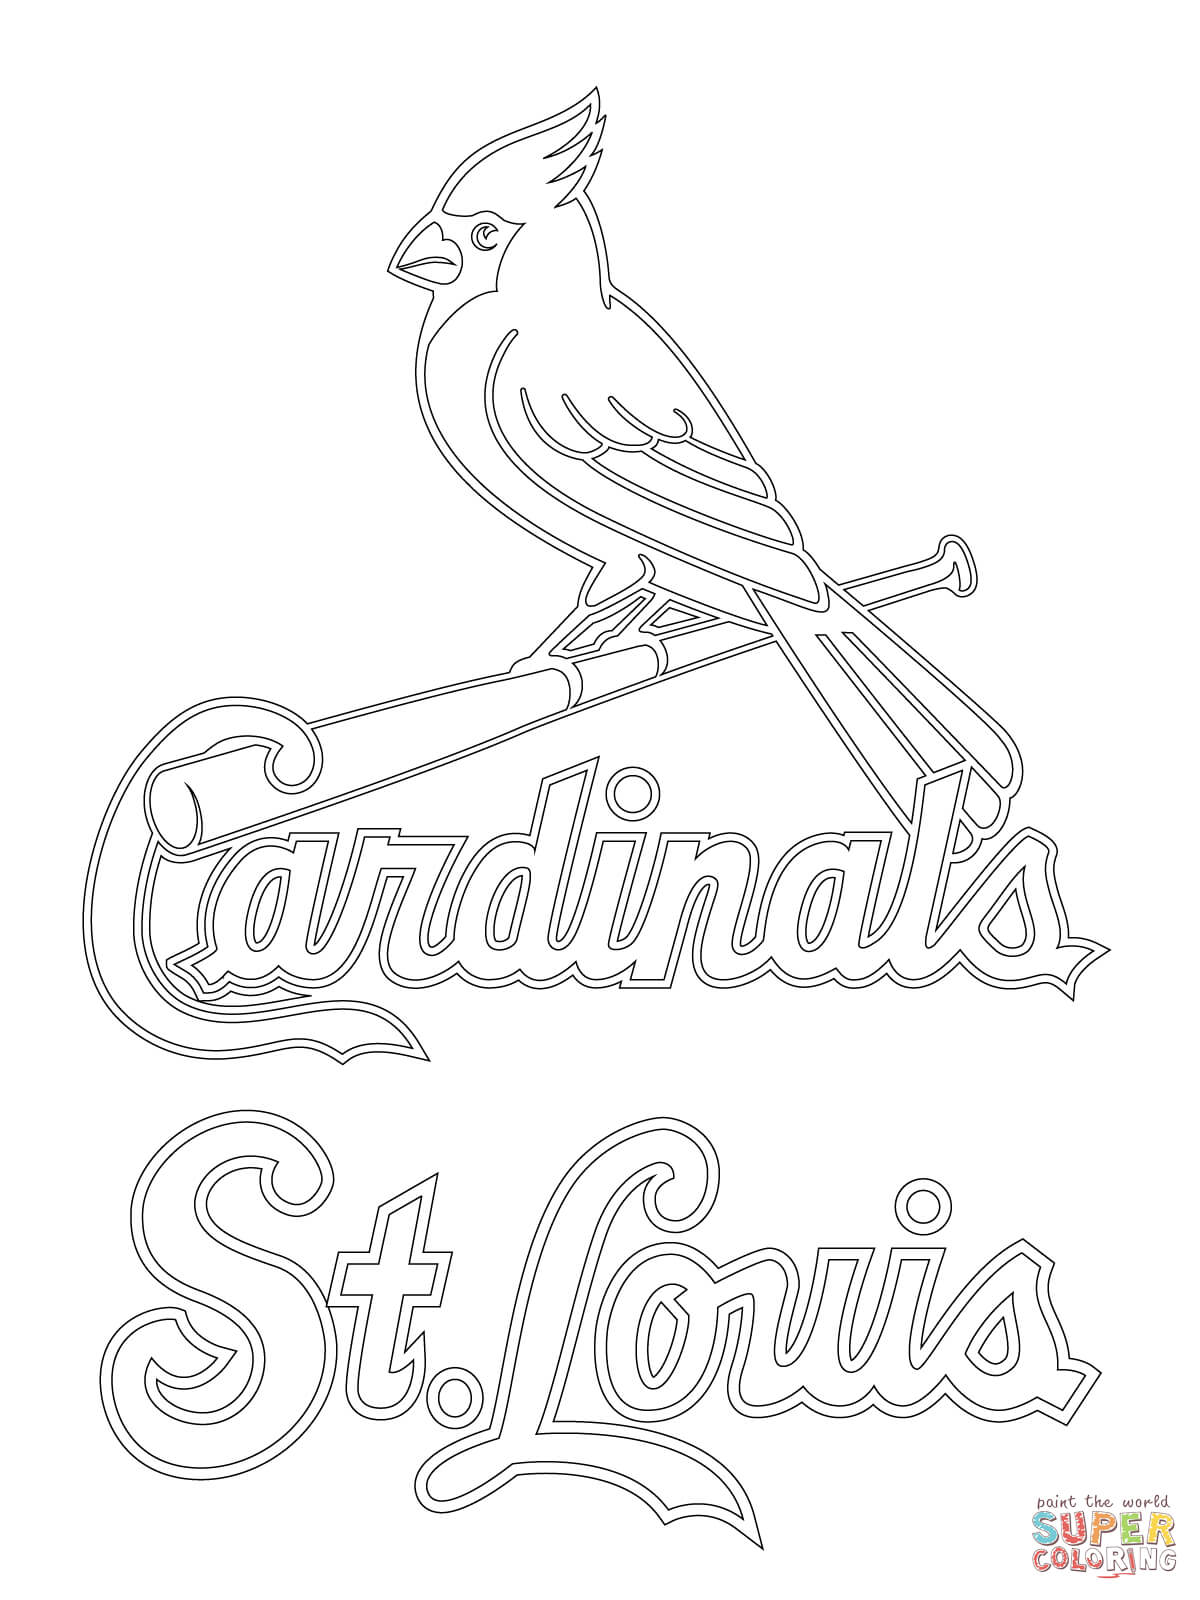 7 Pics Of Cardinal Mascot Coloring Pages St Louis Cardinals Coloring Home